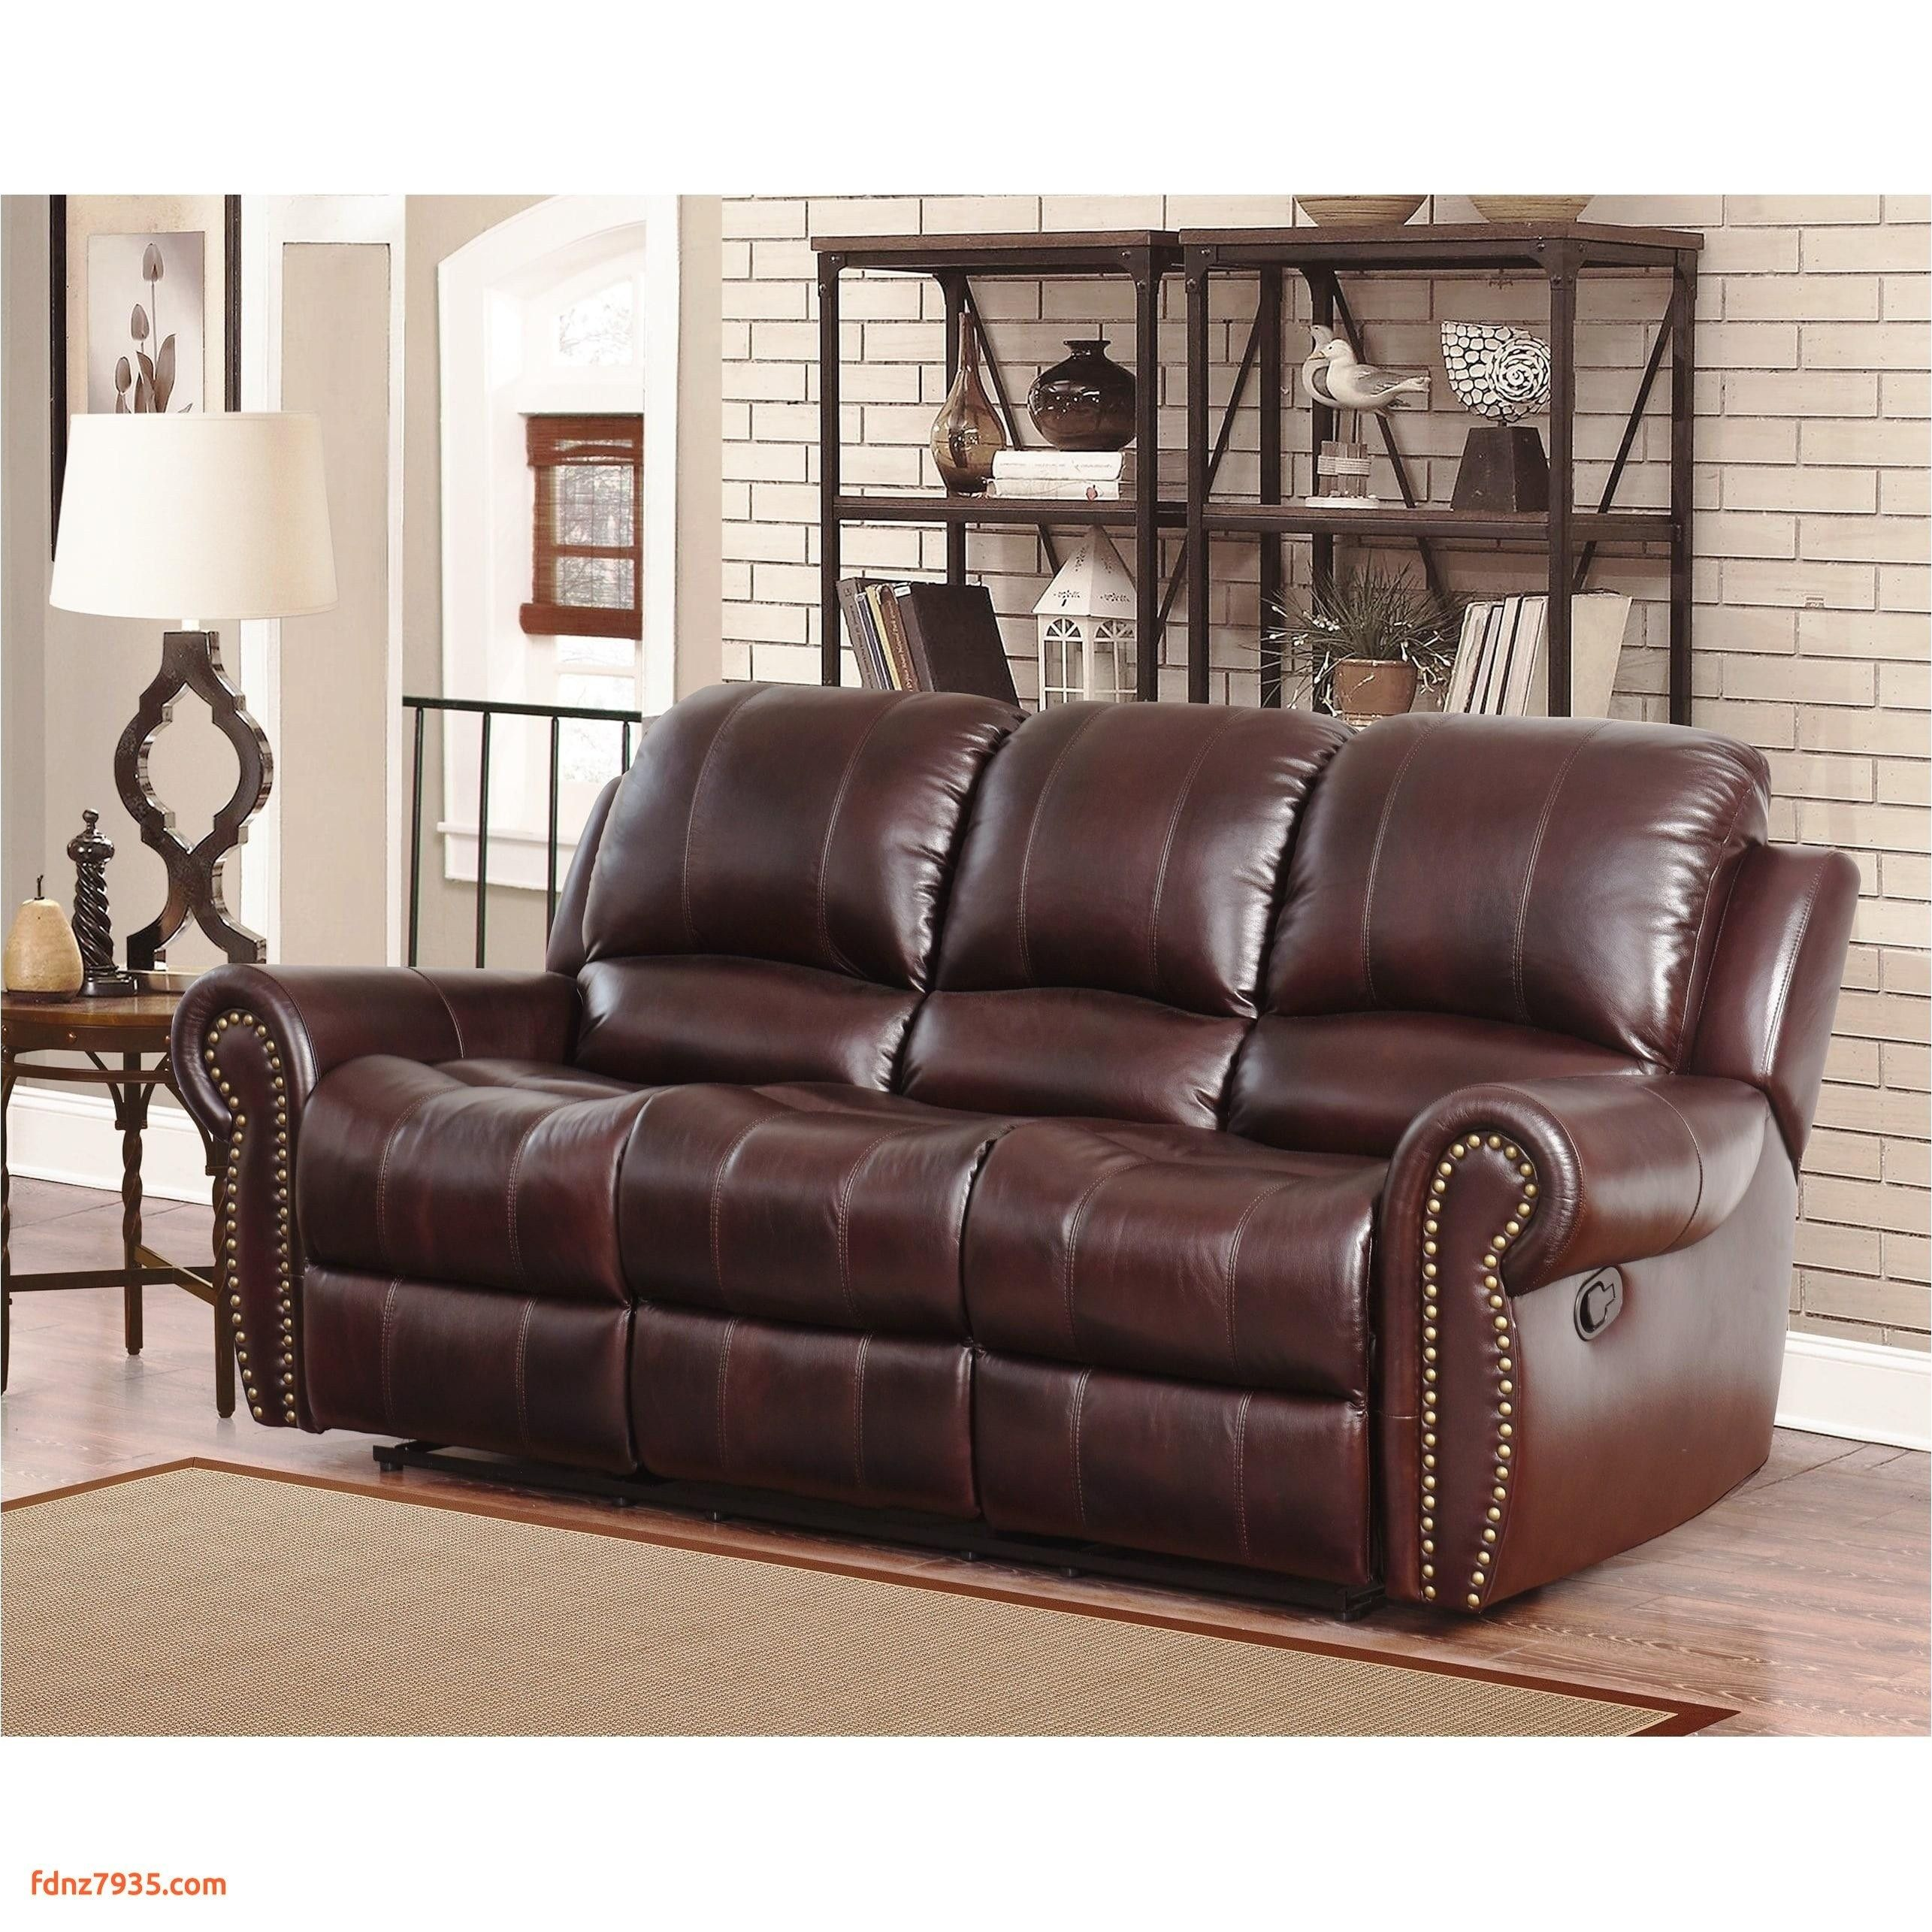 Best American Made Leather sofas Inspirational 100 Leather ...